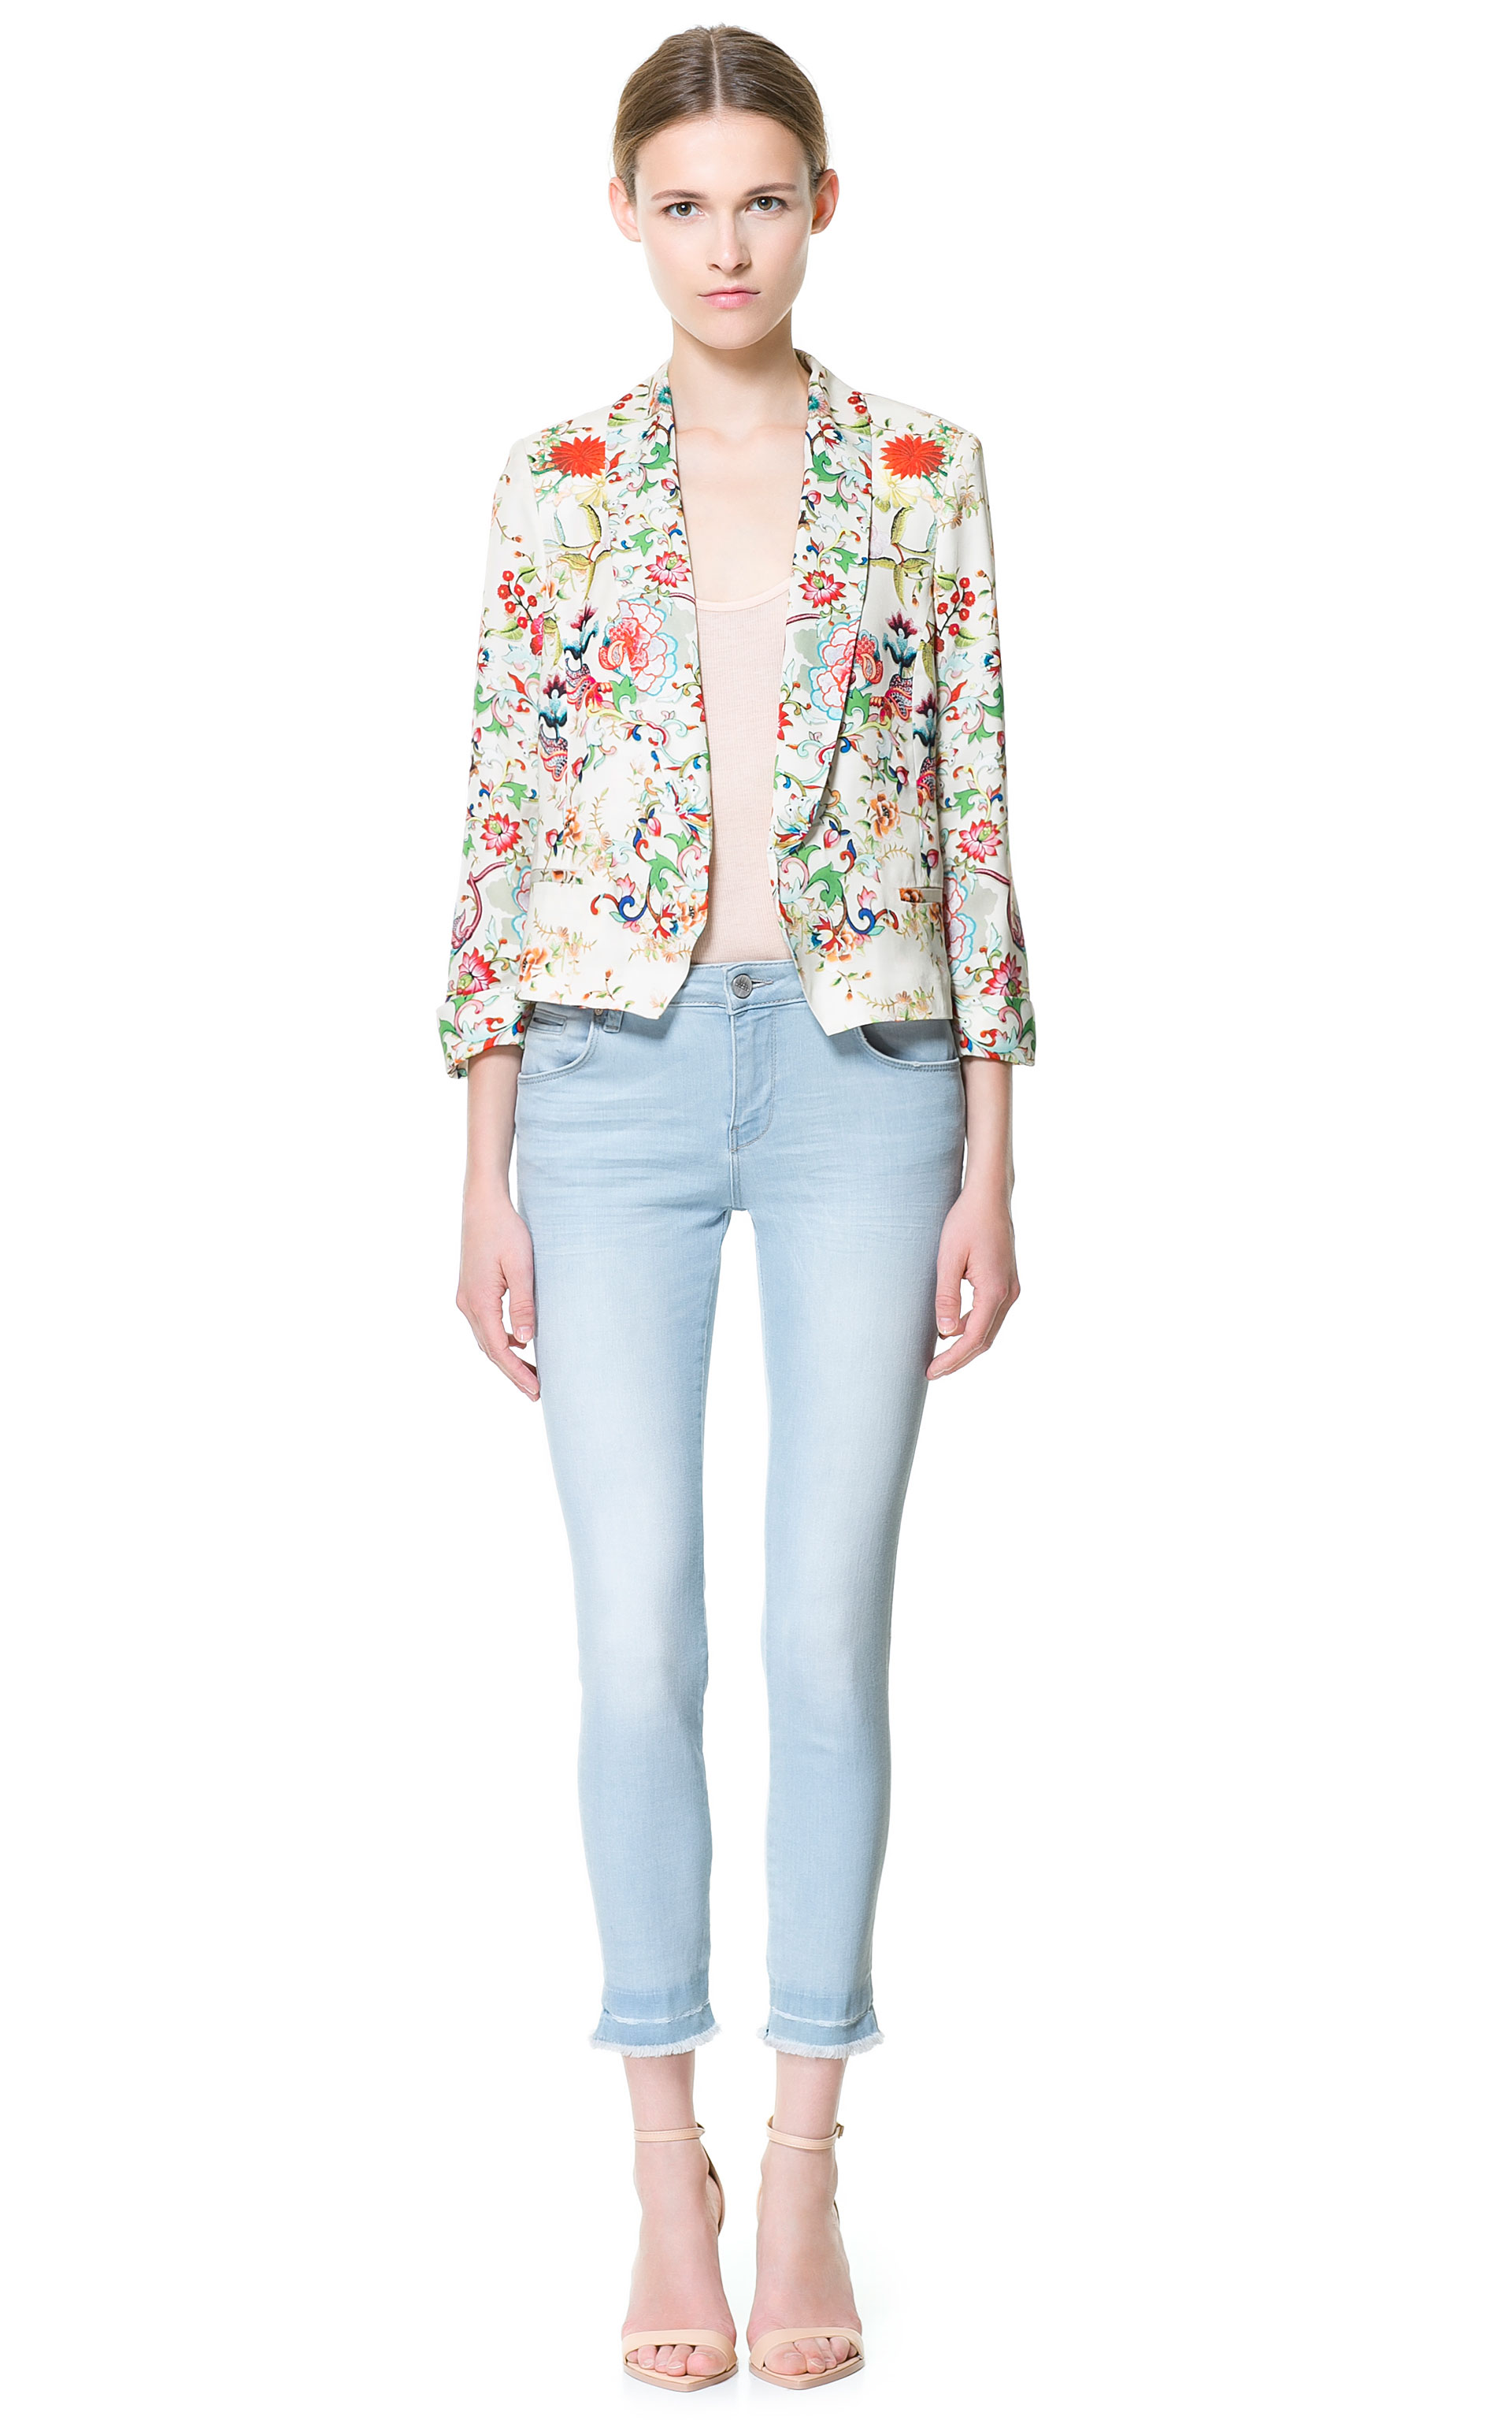 saveit2 10 Summer Blazers To Combat Freezing Air Conditioned Offices (For Under $100)